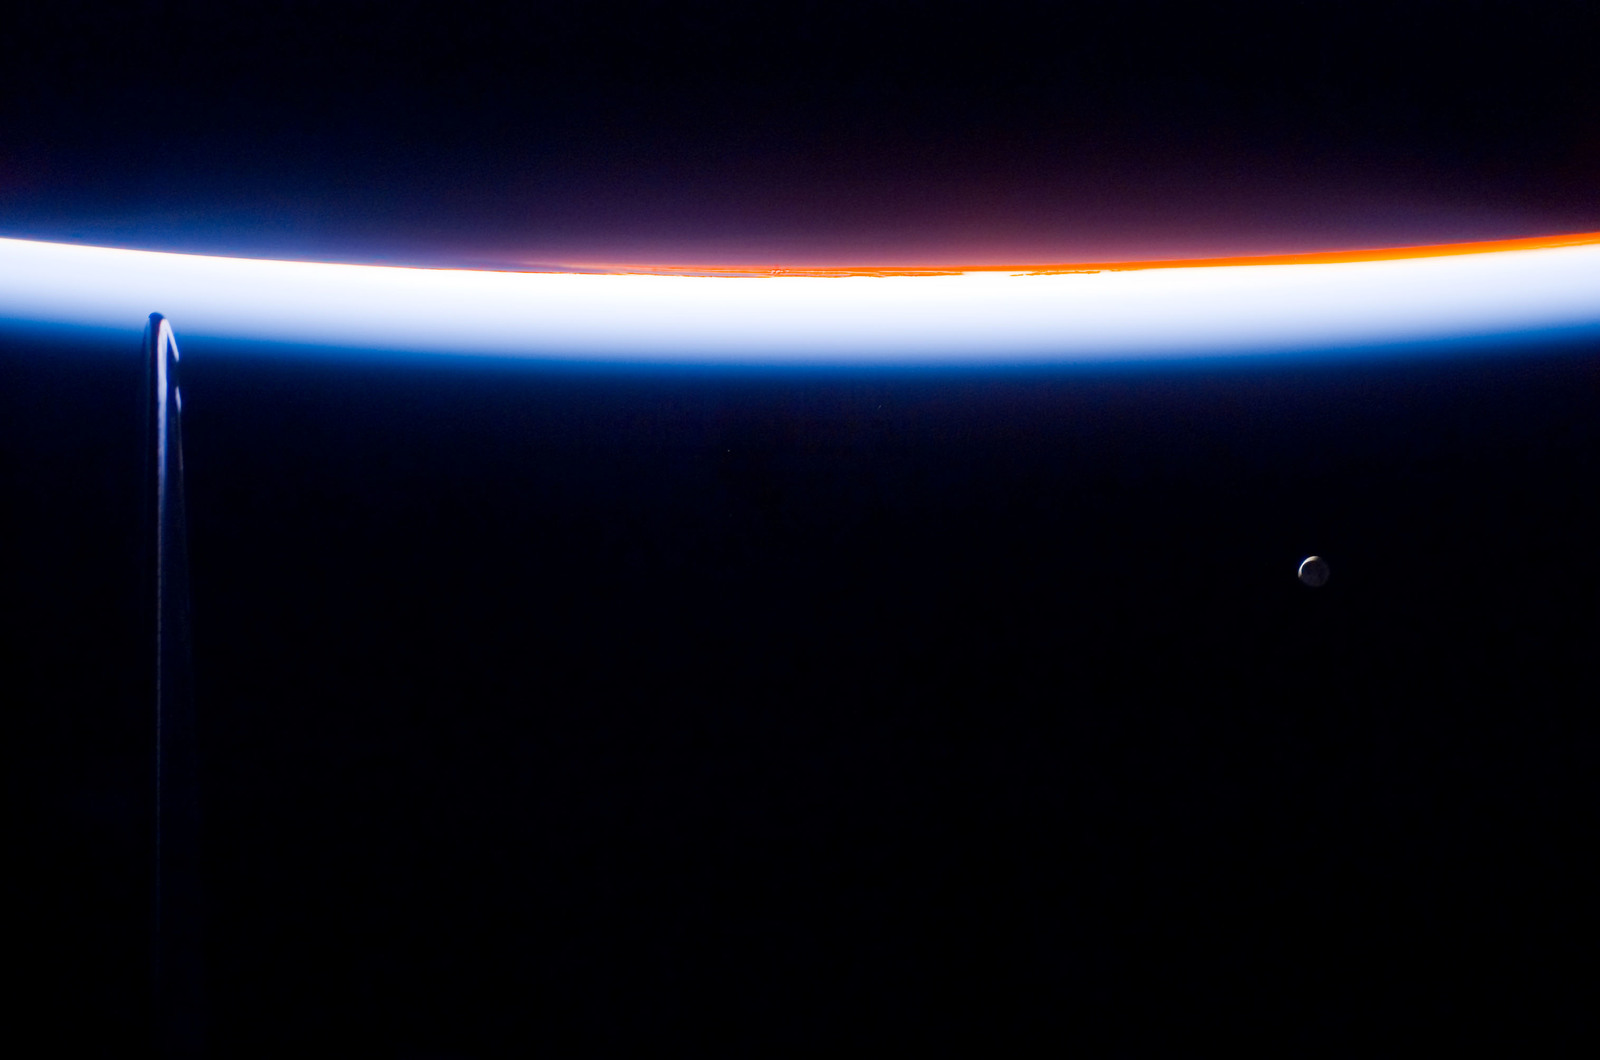 S113E05472 - STS-113 - Earth limb view of Orbital Sunset during STS-113